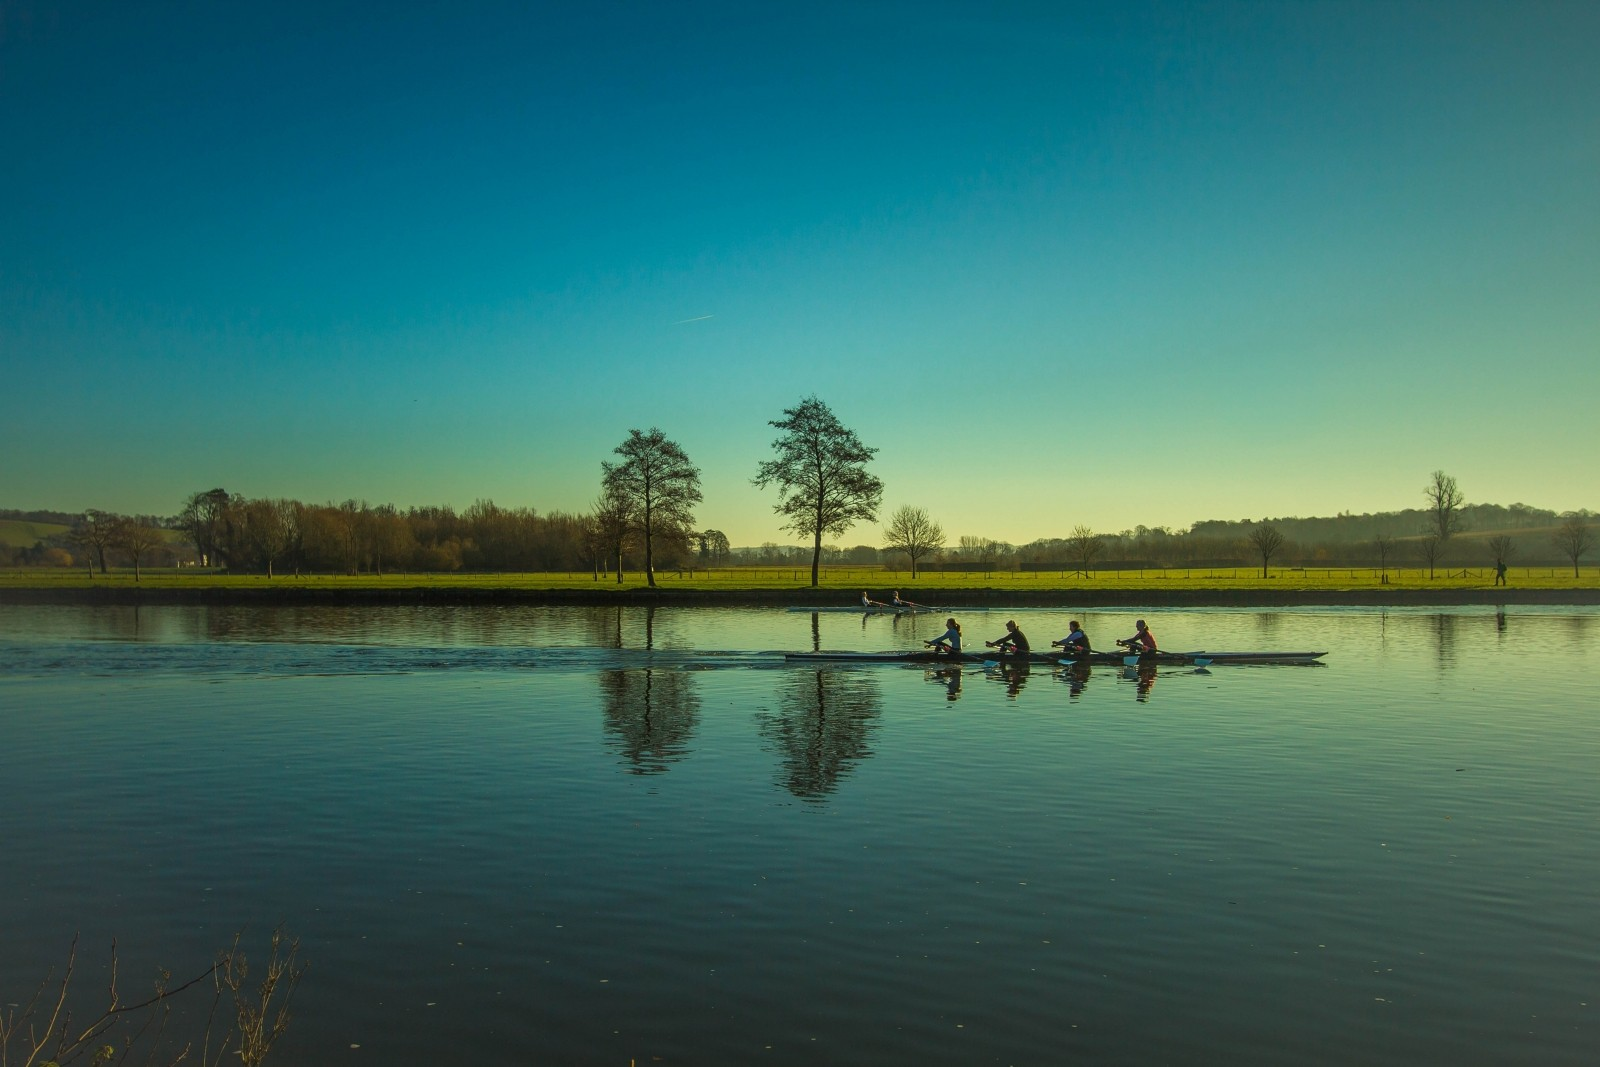 boating-rowing-river-kayak-reflection-sport-tema.jpg